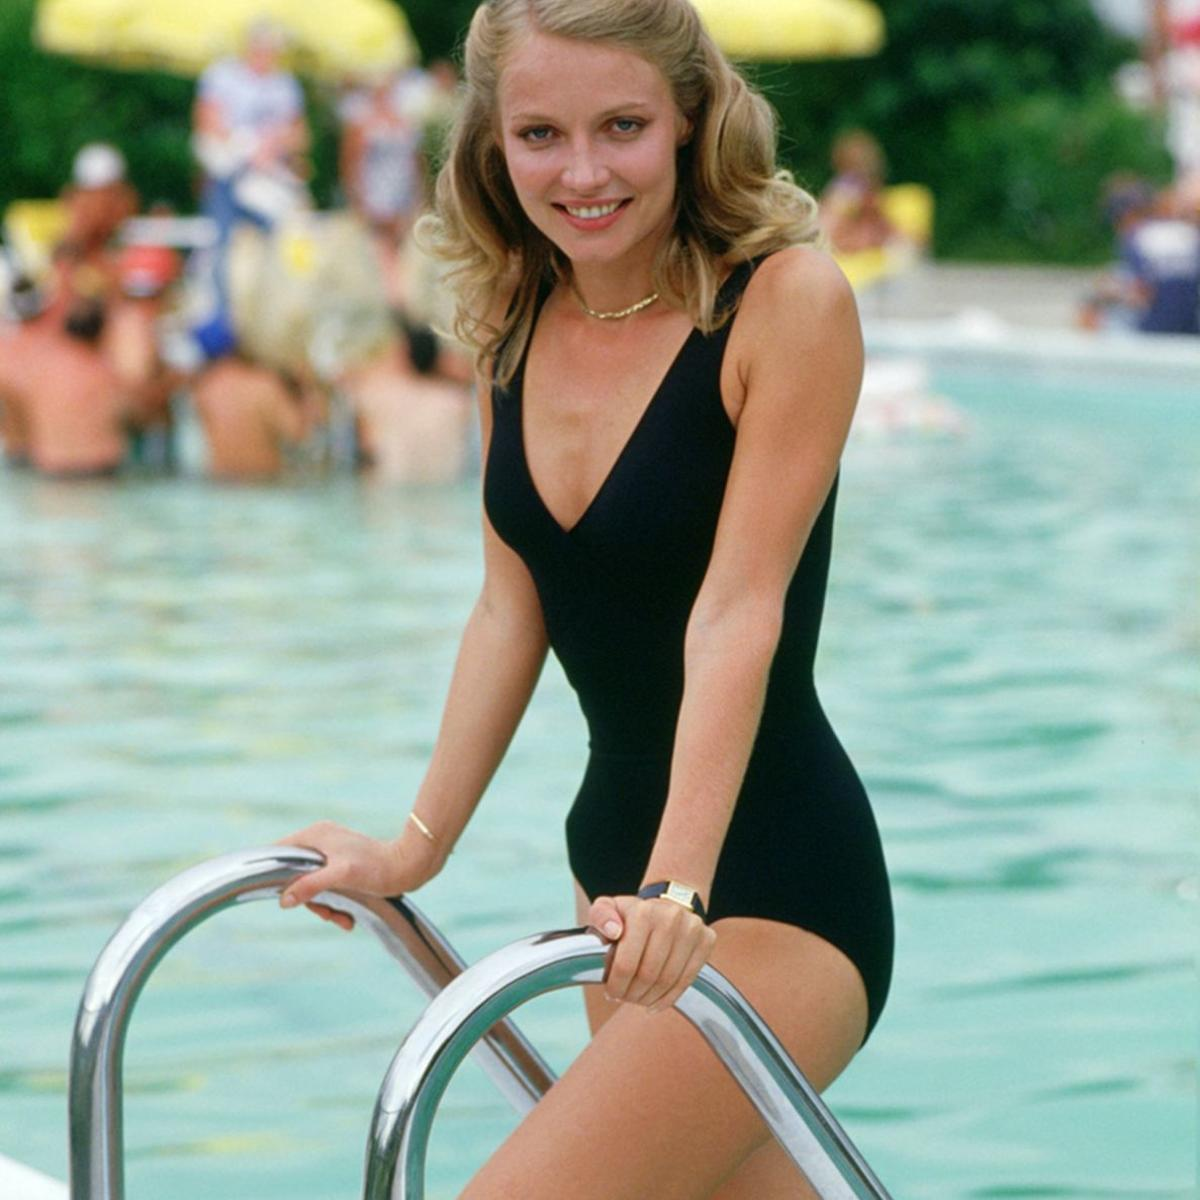 Cindy Morgan as Lacey Underall